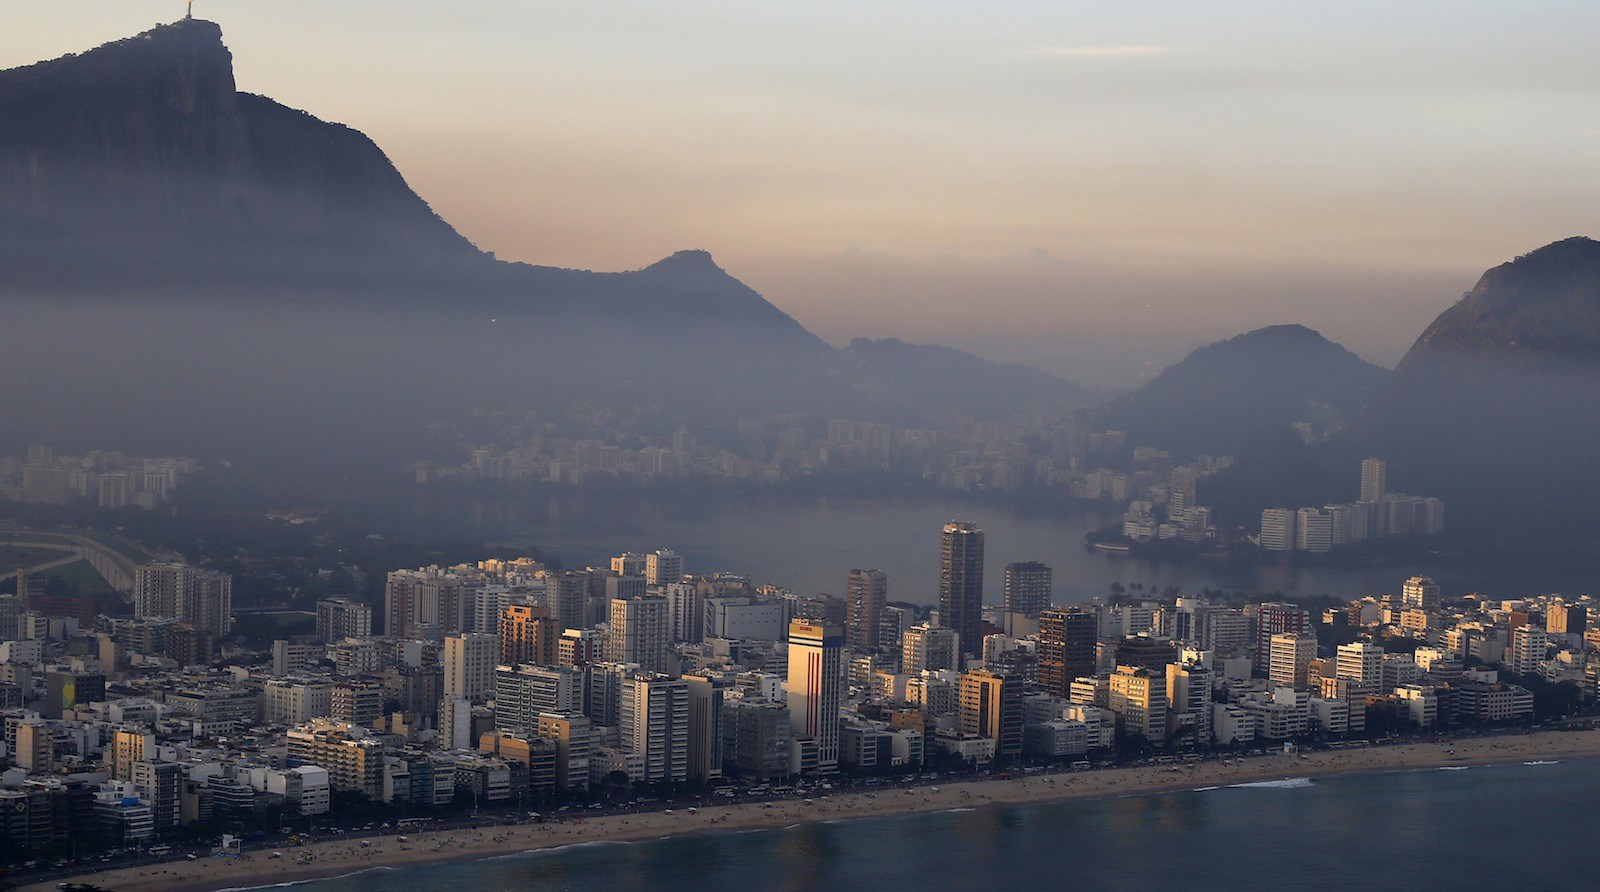 A view of a part of Rio de Janeiro's south zone from above, June 27, 2014. REUTERS/Ricardo Moraes (BRAZIL - Tags: SPORT OLYMPICS CITYSCAPE BUSINESS) - RTR3W50Y